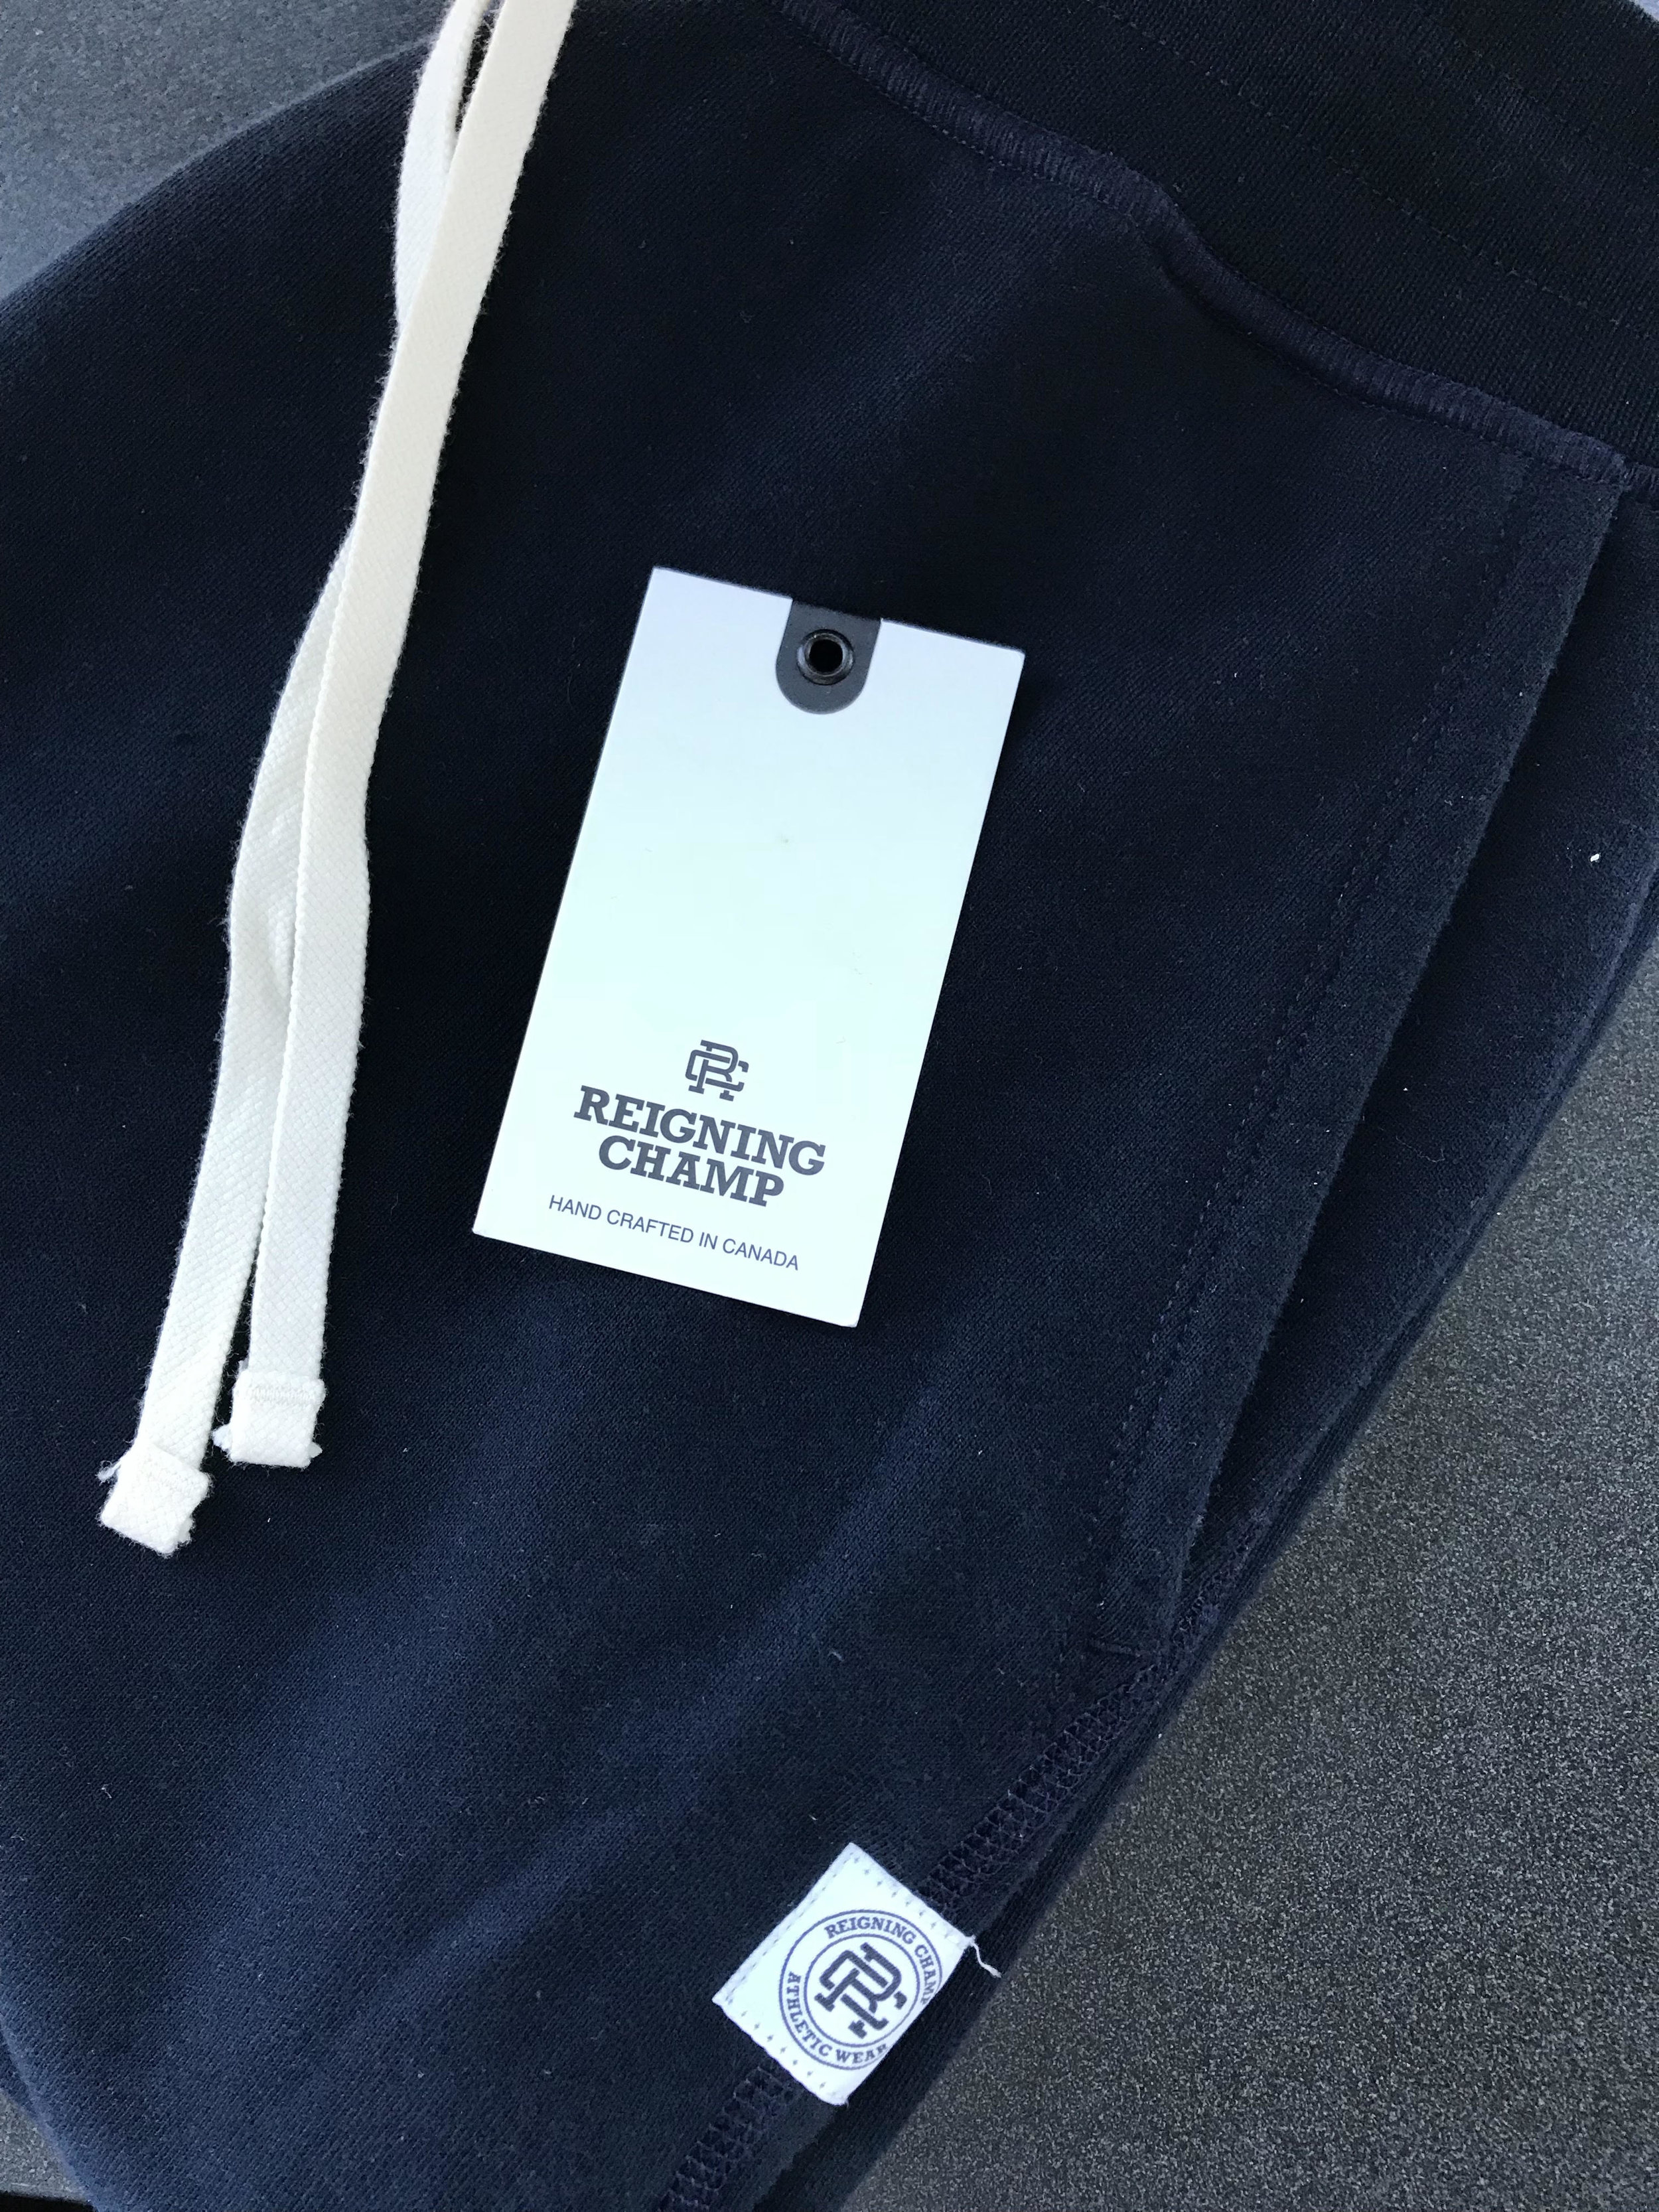 Reigning Champ Sweats - Reigning Champ is a Canadian essentials maker. They frequently collaborate with big names such as Adidas but they are known for their core sweats line. I picked up a pair of their sweatpants on sale recently and the quality is just as superb as the heavyweight zip-up hoodie that I bought two years ago. In my opinion, Reigning Champ's sweats put pretty much all sweats in their price range and above to shame with its cost vs. quality.